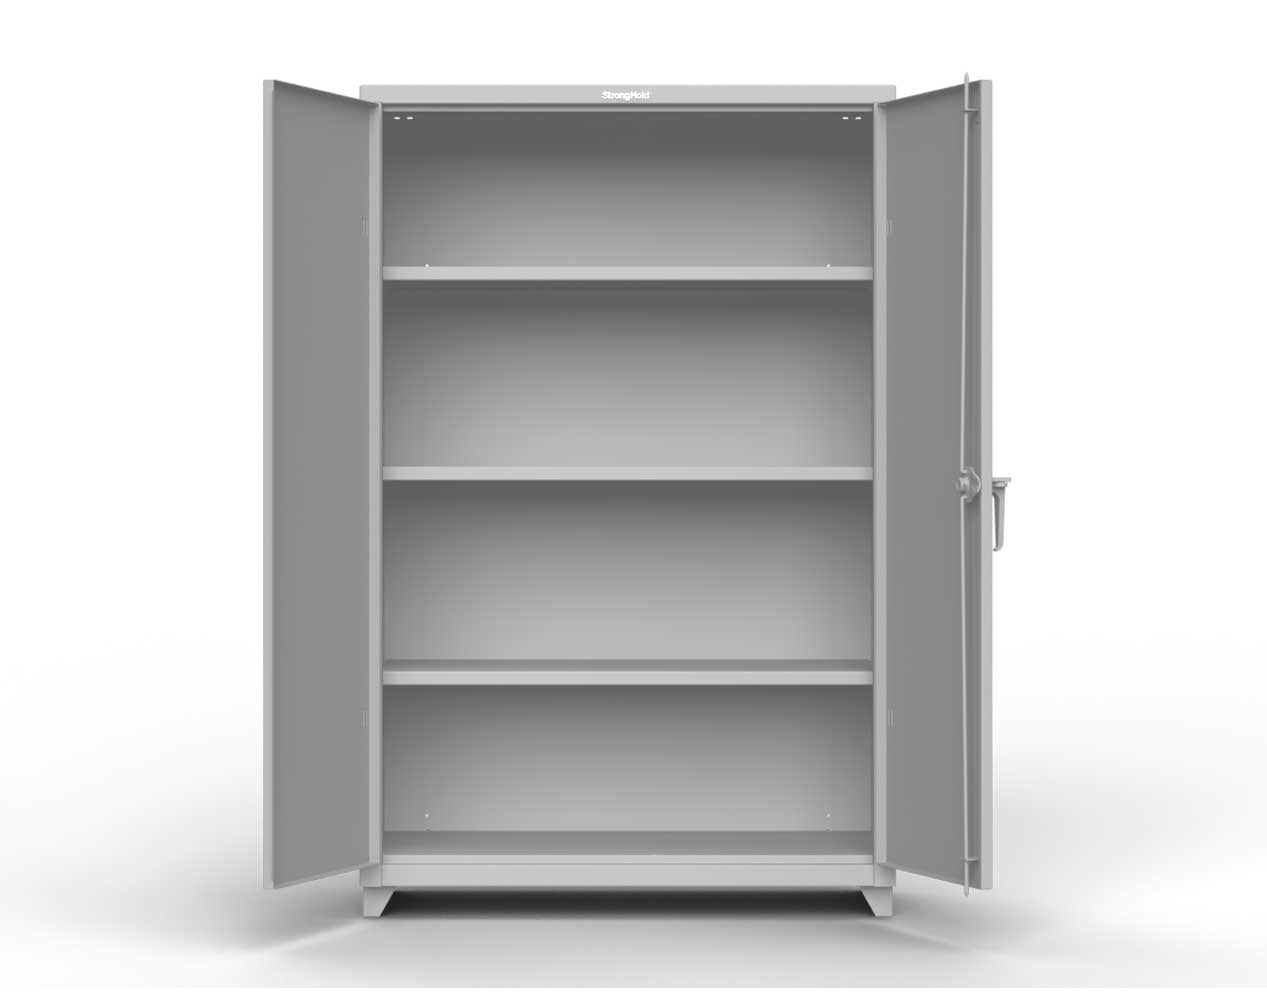 Extra Heavy Duty 14 GA Cabinet with 5 Shelves – 60 In. W x 24 In. D x 75 In. H